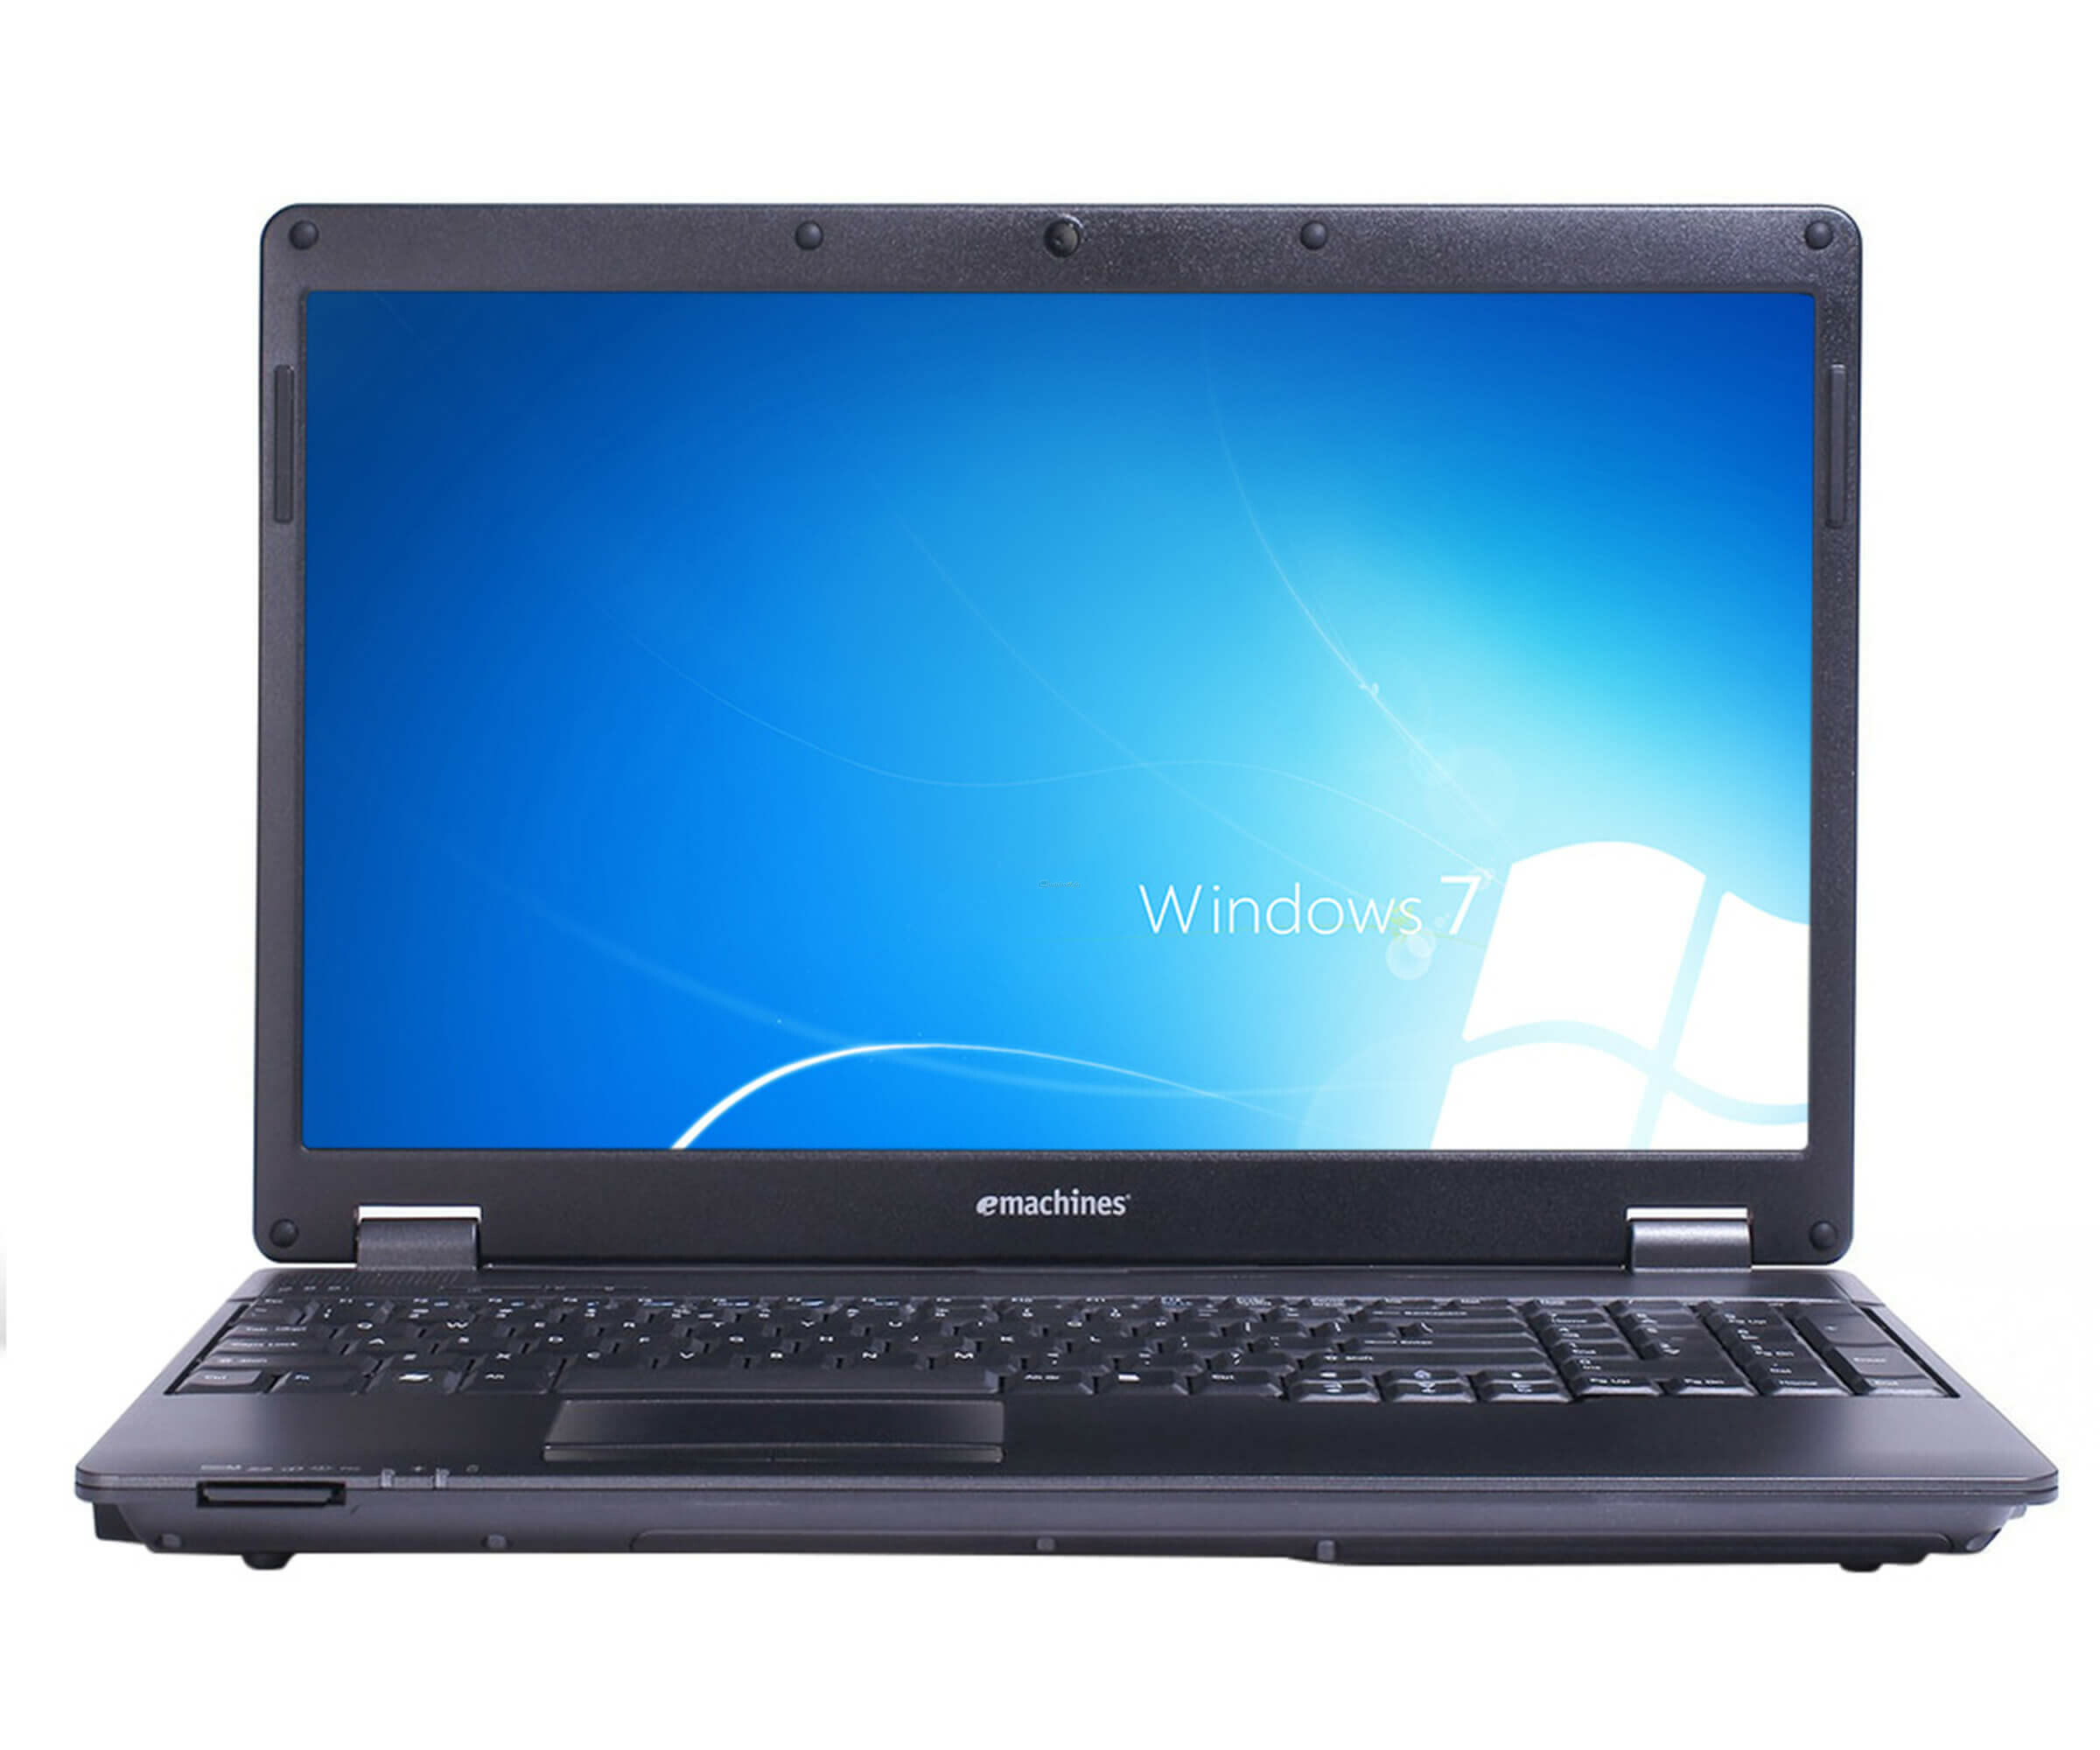 Acer Emachines E728 Series W7 Intel T4500 2 30 Ghz 4 Gb Ram